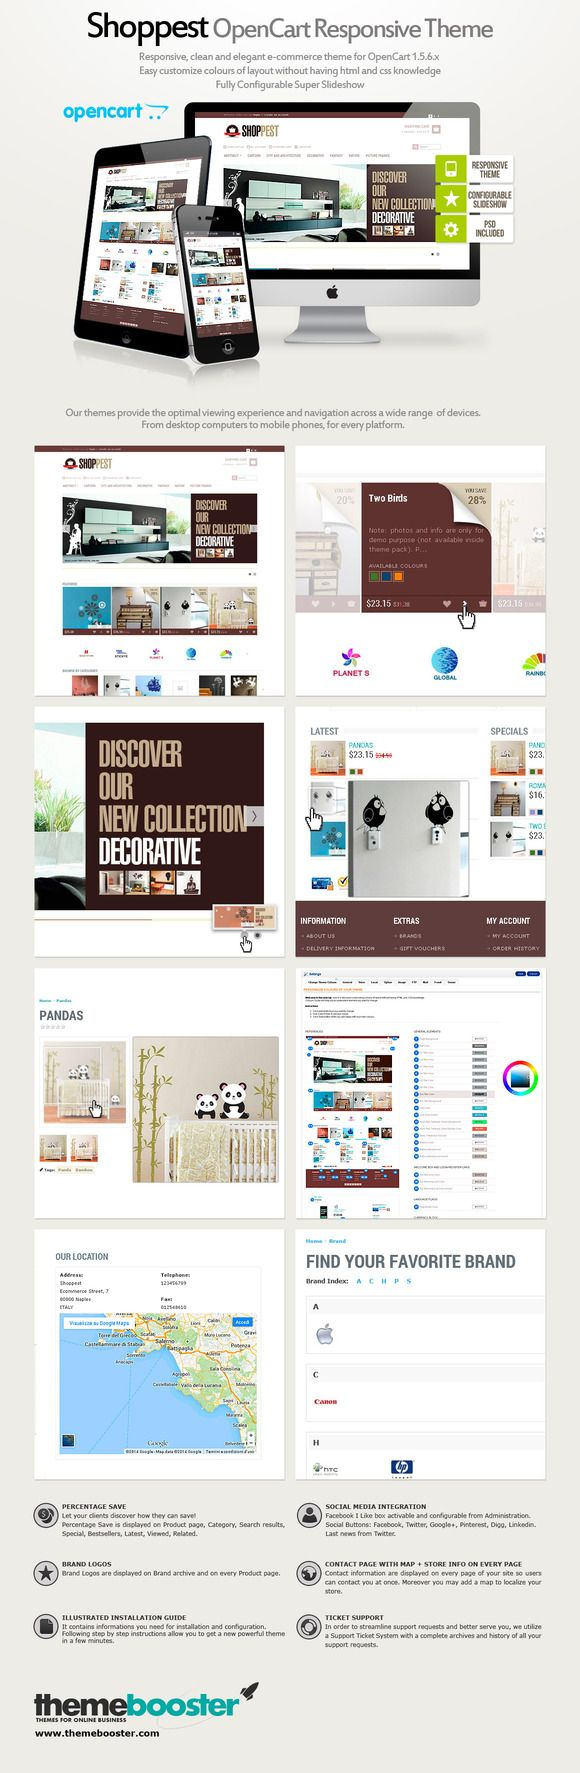 Shoppest Opencart Responsive Theme by ThemeBooster.com on Creative Market